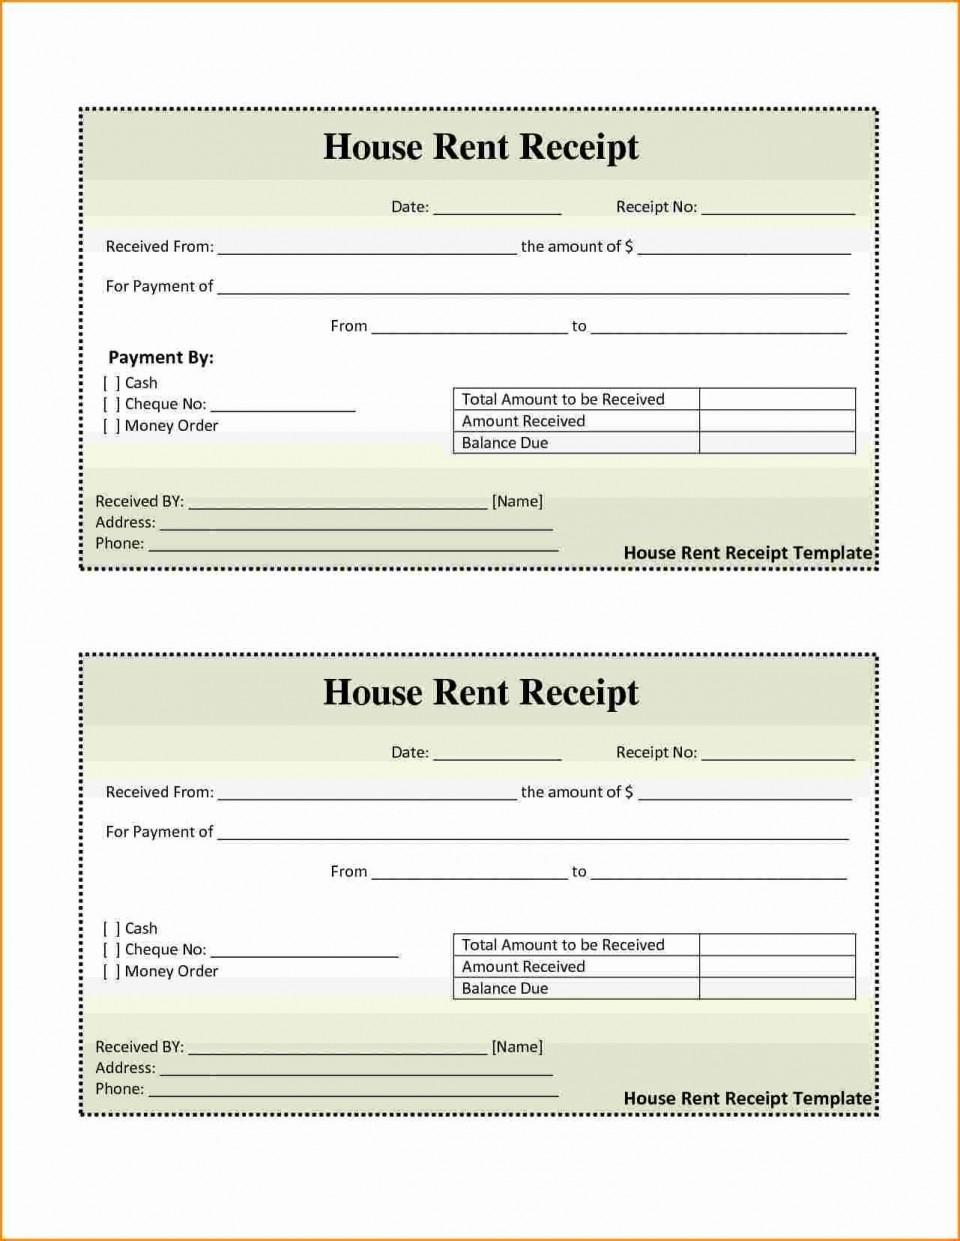 001 Awesome House Rent Receipt Sample Doc Idea  Template Word Document Free Download Format For Income Tax960